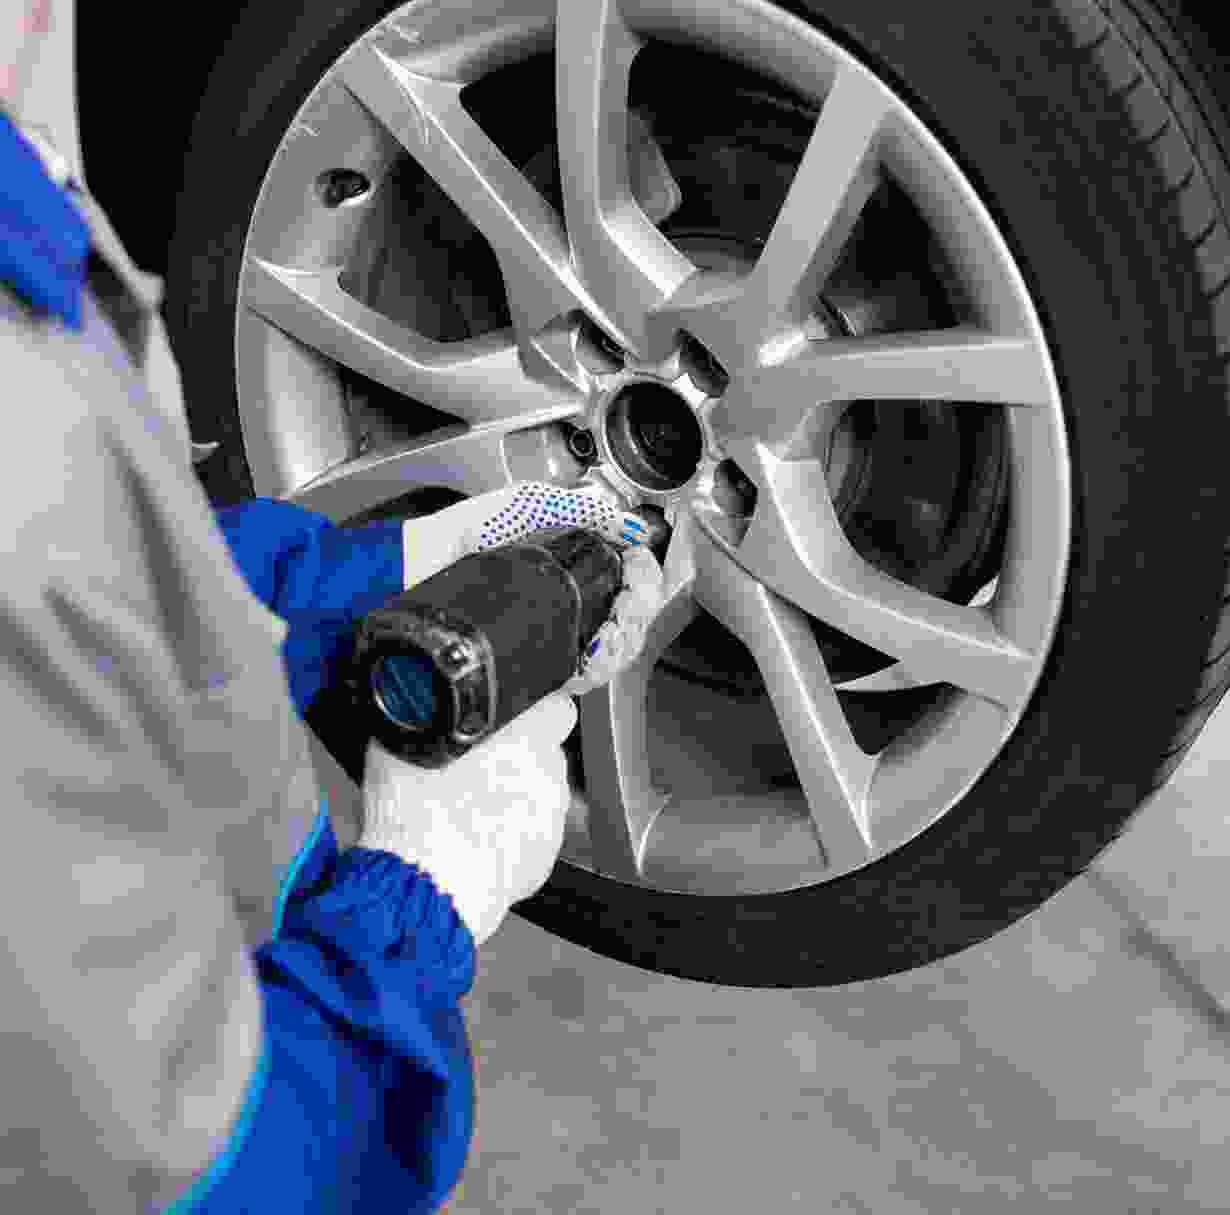 Servicing the Wheel